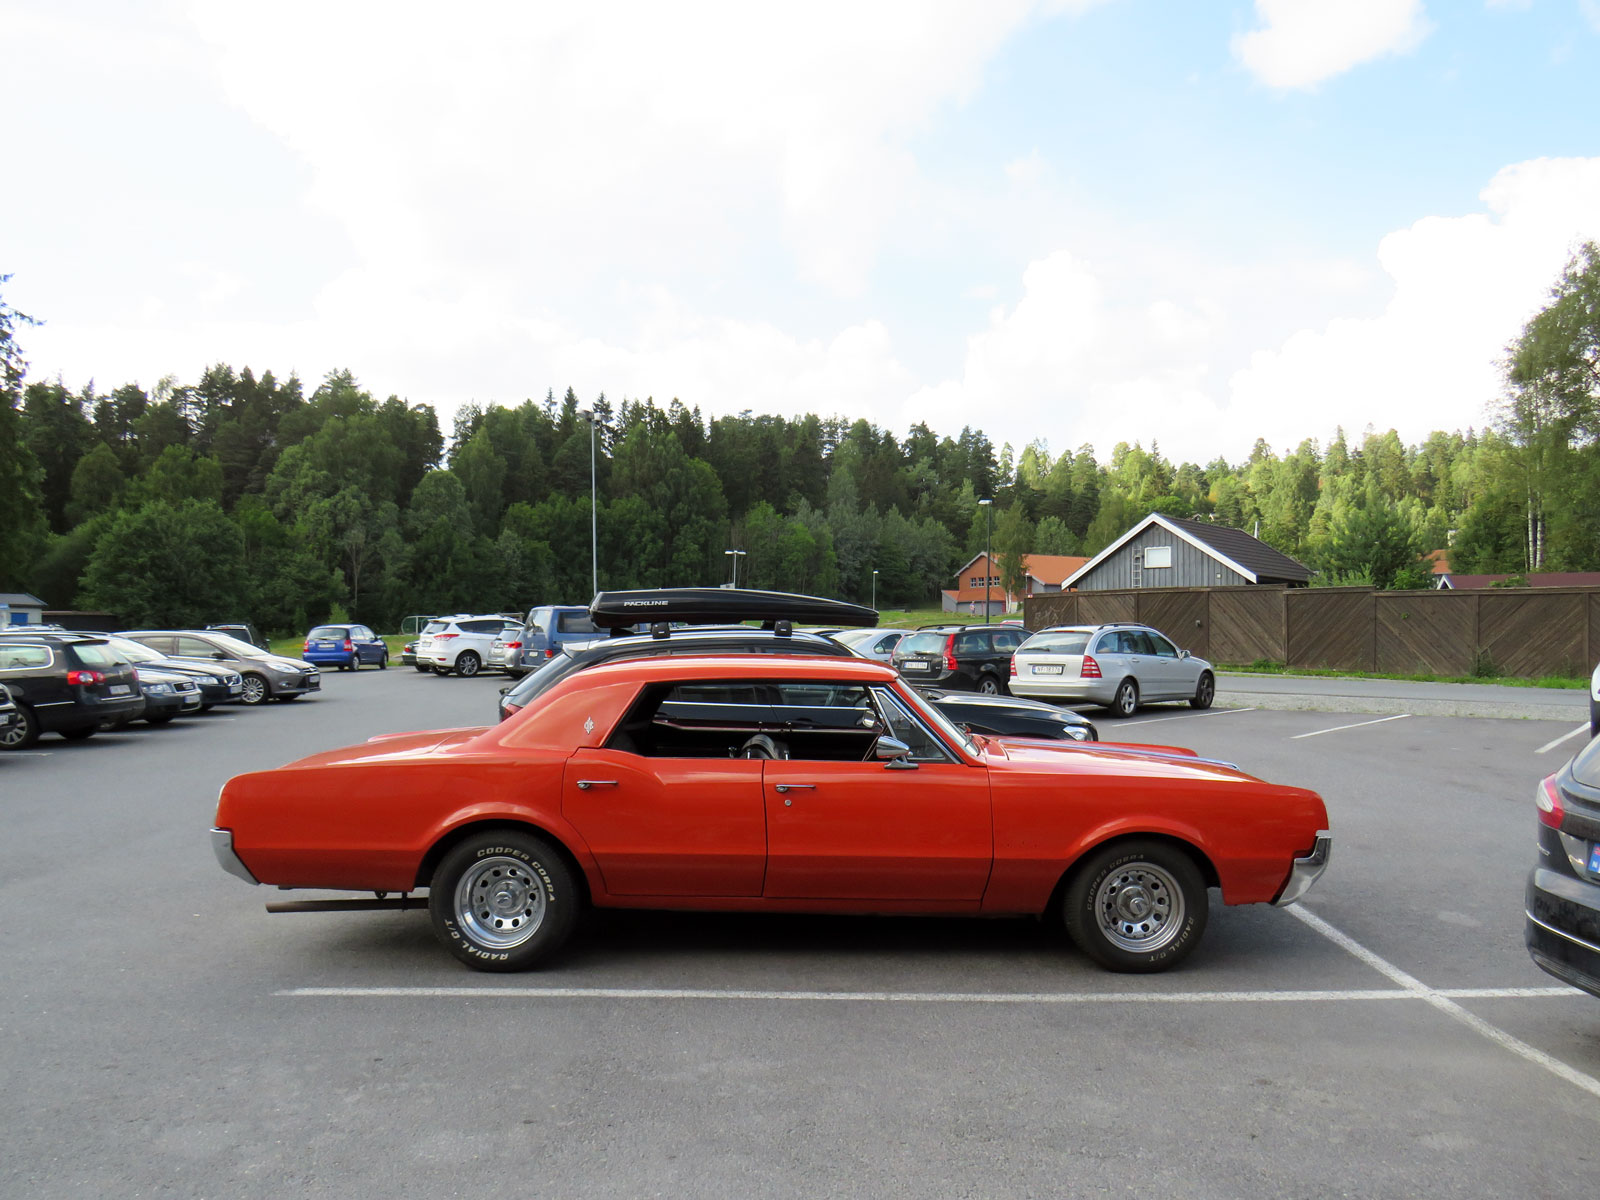 1967 Oldsmobile Cutlass four door hardtop norway parked cars